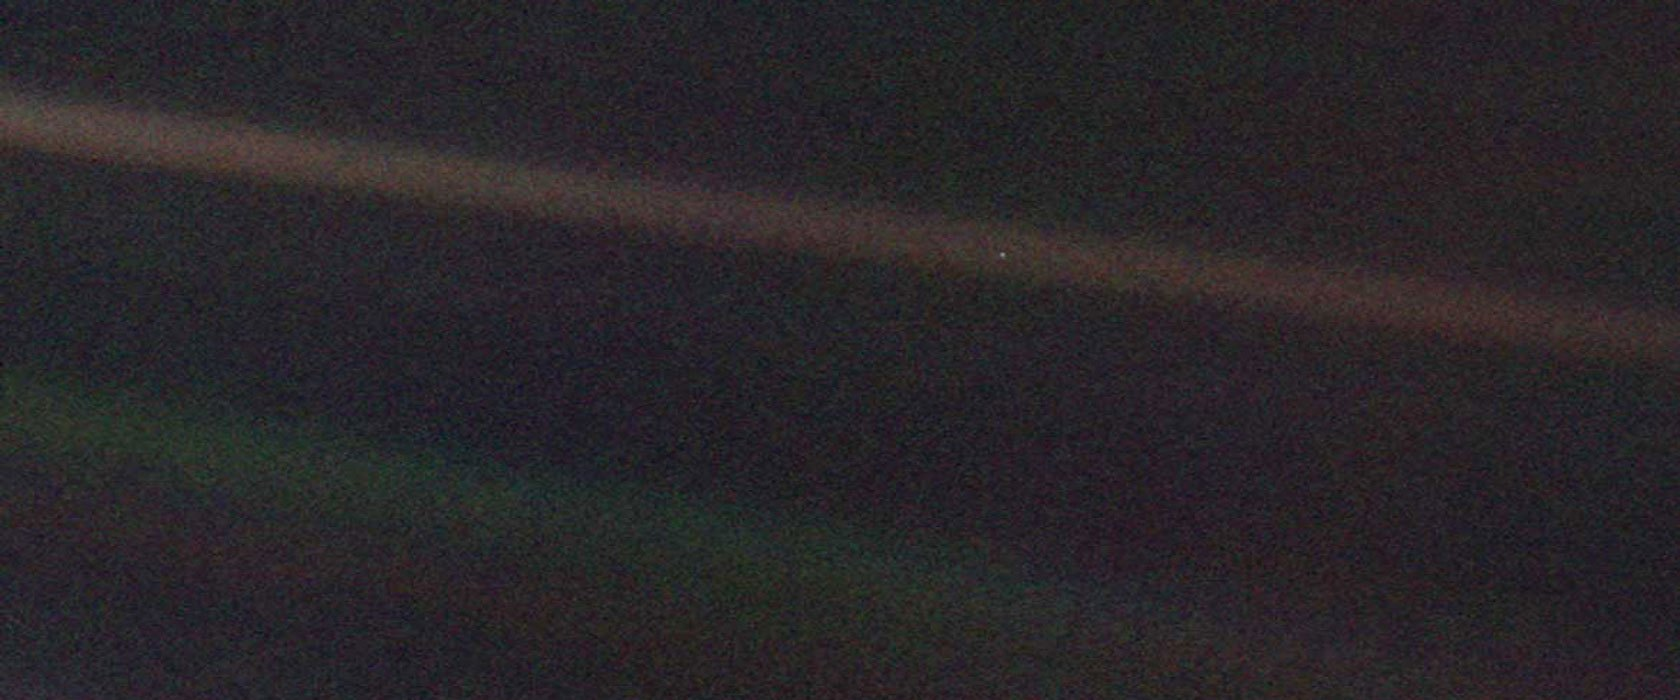 Praying for a Pale Blue Dot